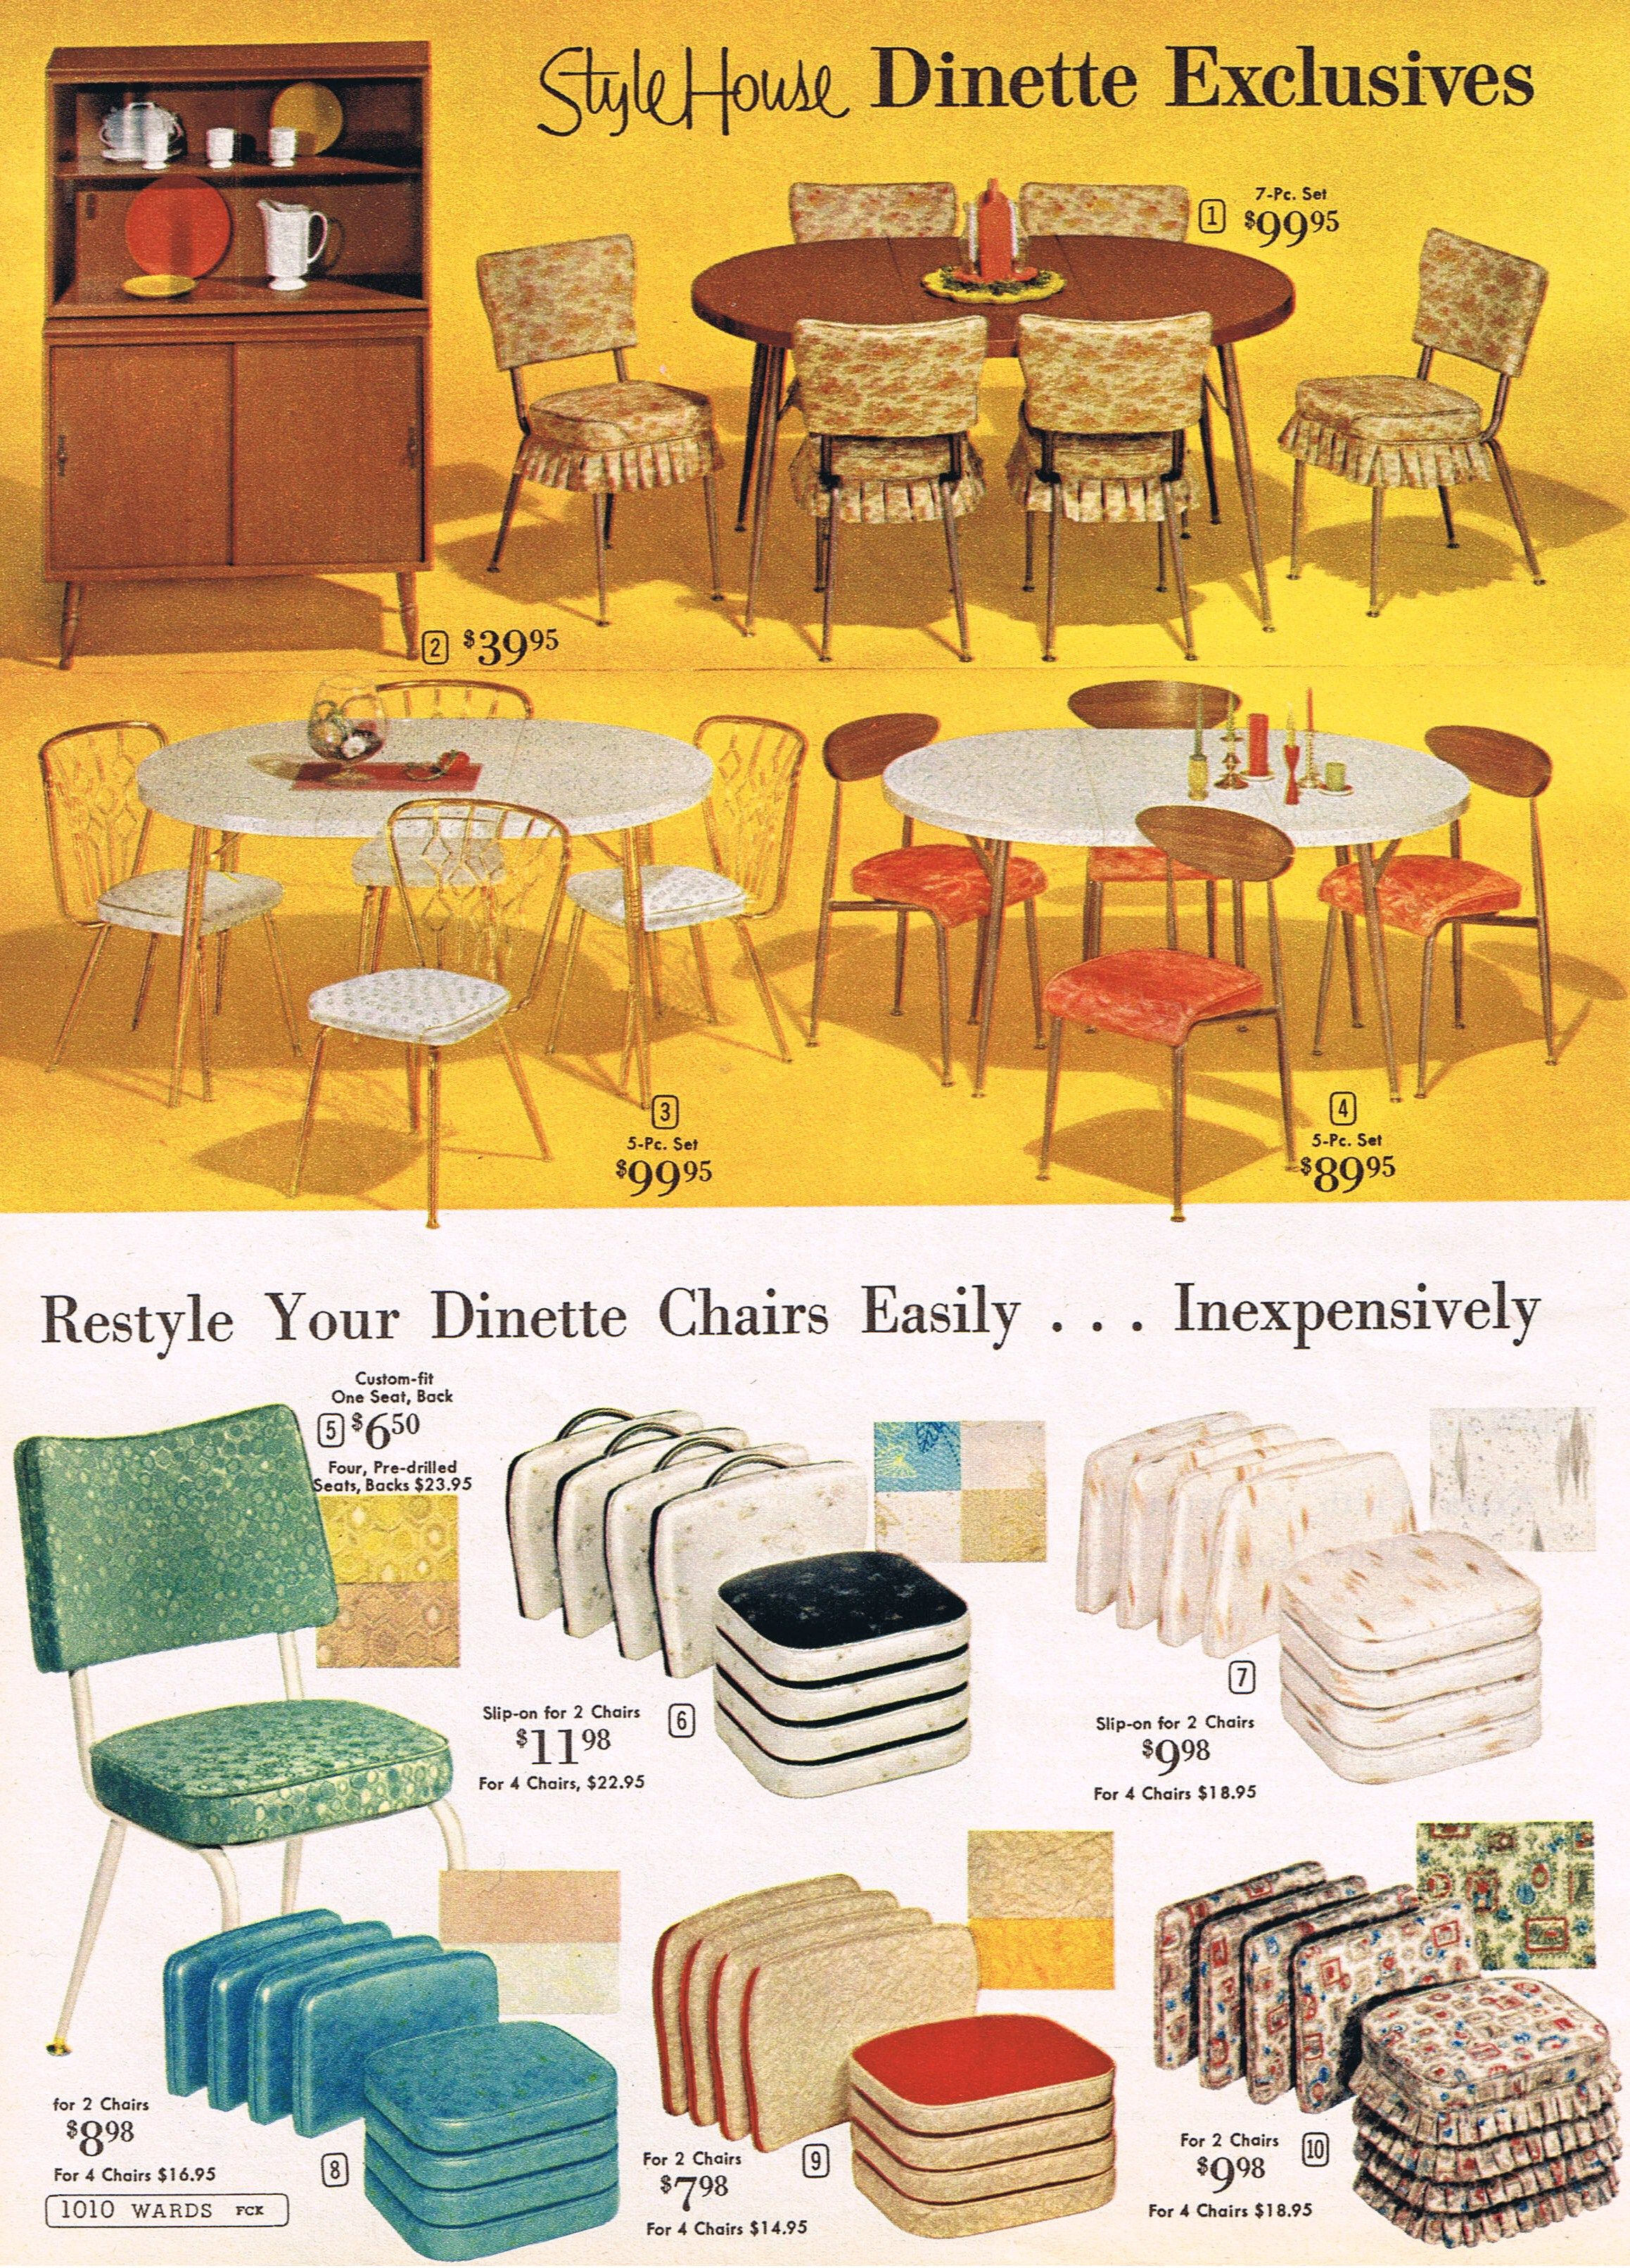 Wardsu0027 Dinette Sets And Chair Cushions, ...